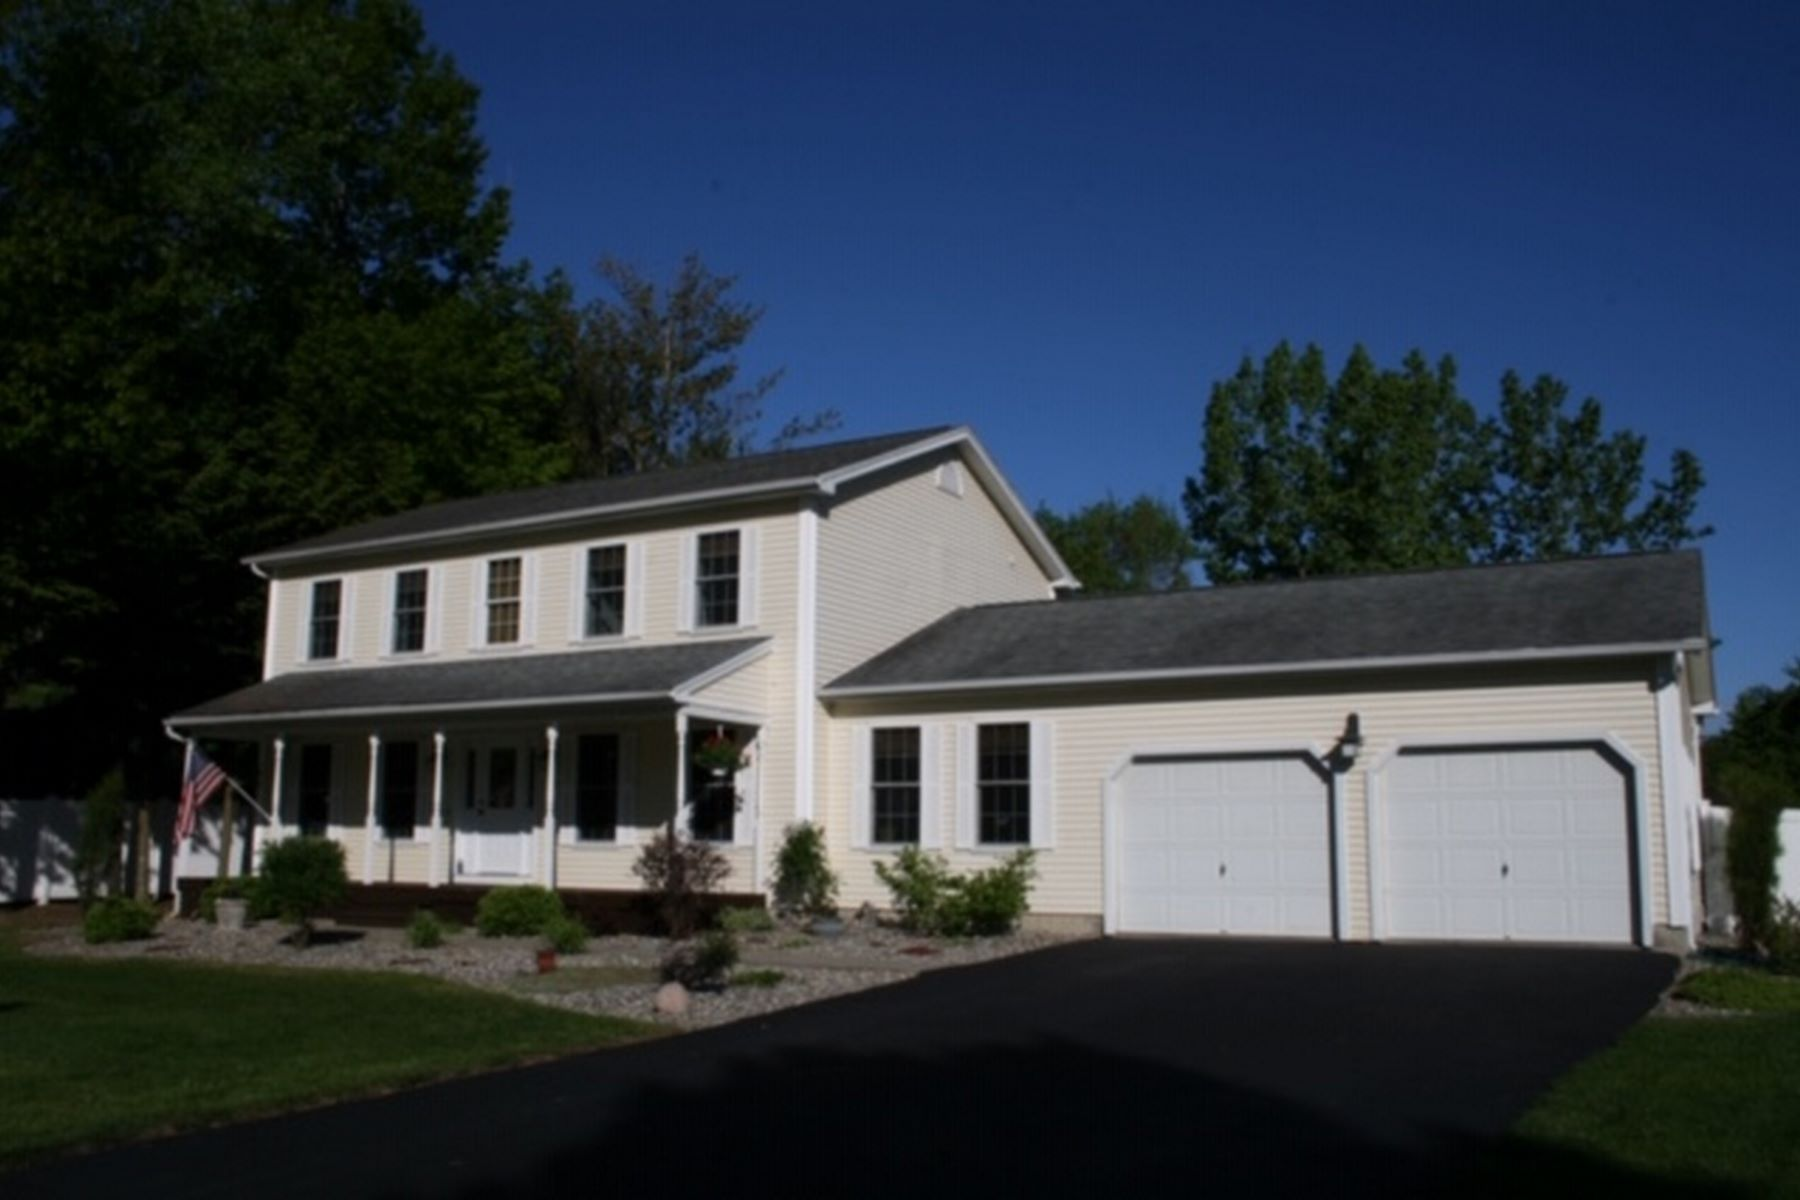 single family homes for Sale at 89 Overlake Drive Drive, Milton 89 Overlake Dr Milton, Vermont 05468 United States